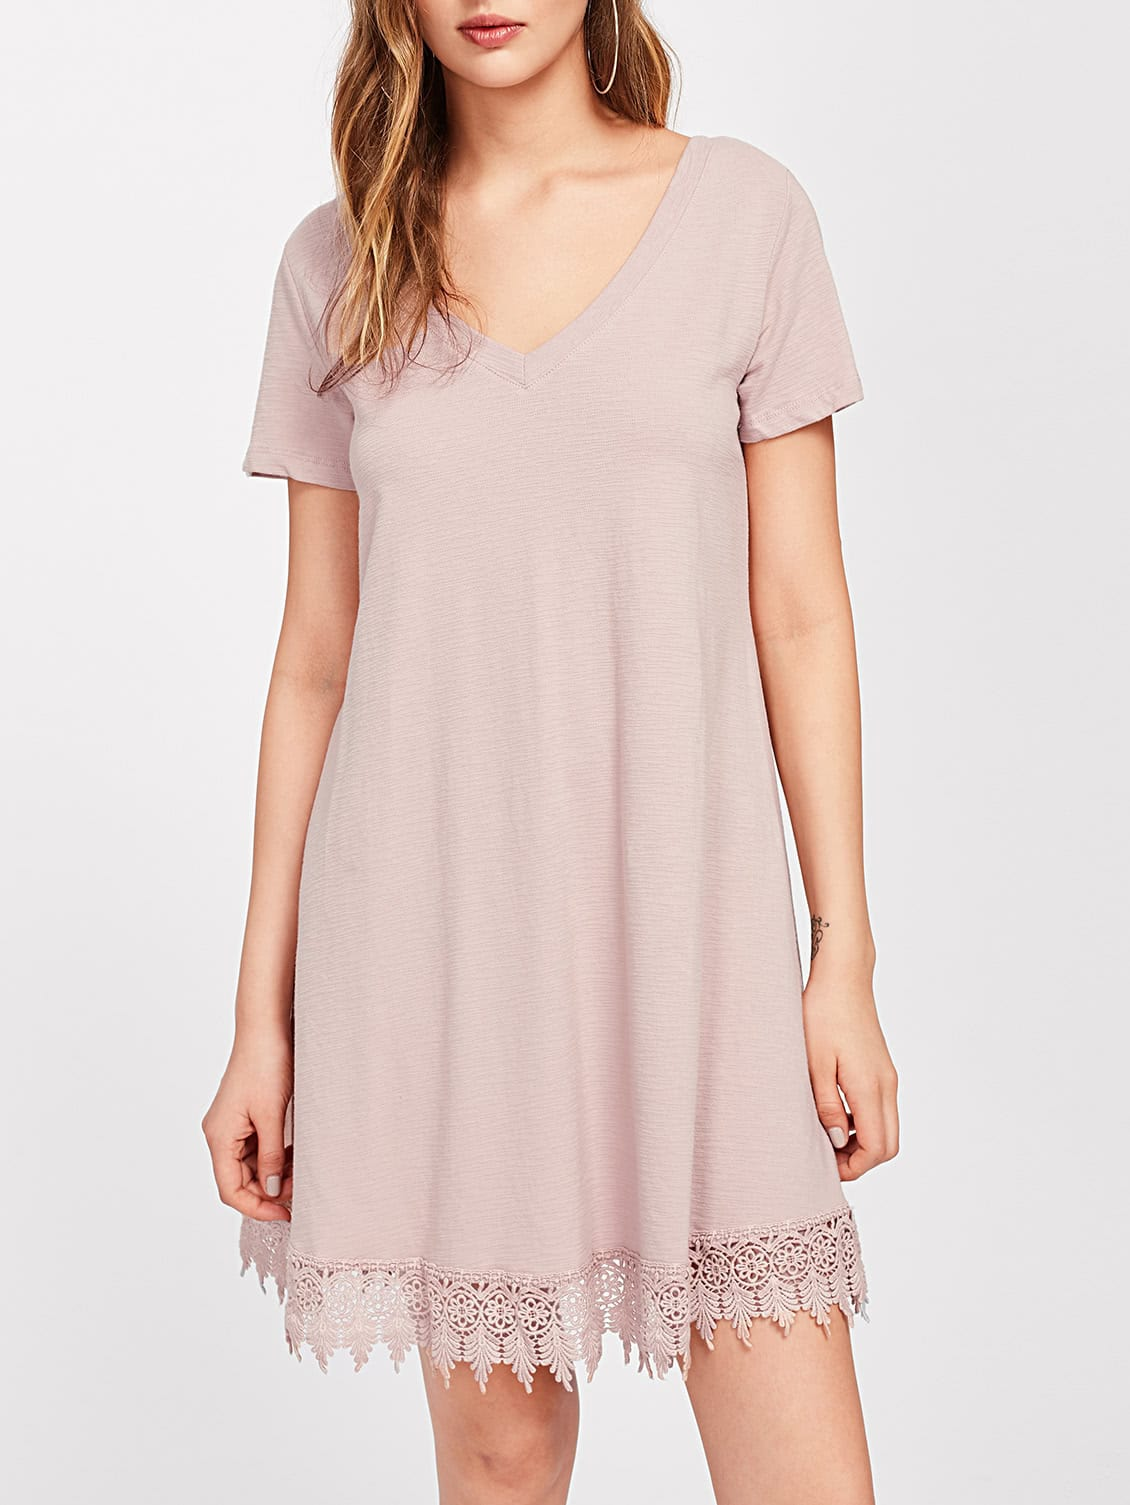 Фото Lace Hem Tie Up Scoop Back Textured Dress. Купить с доставкой